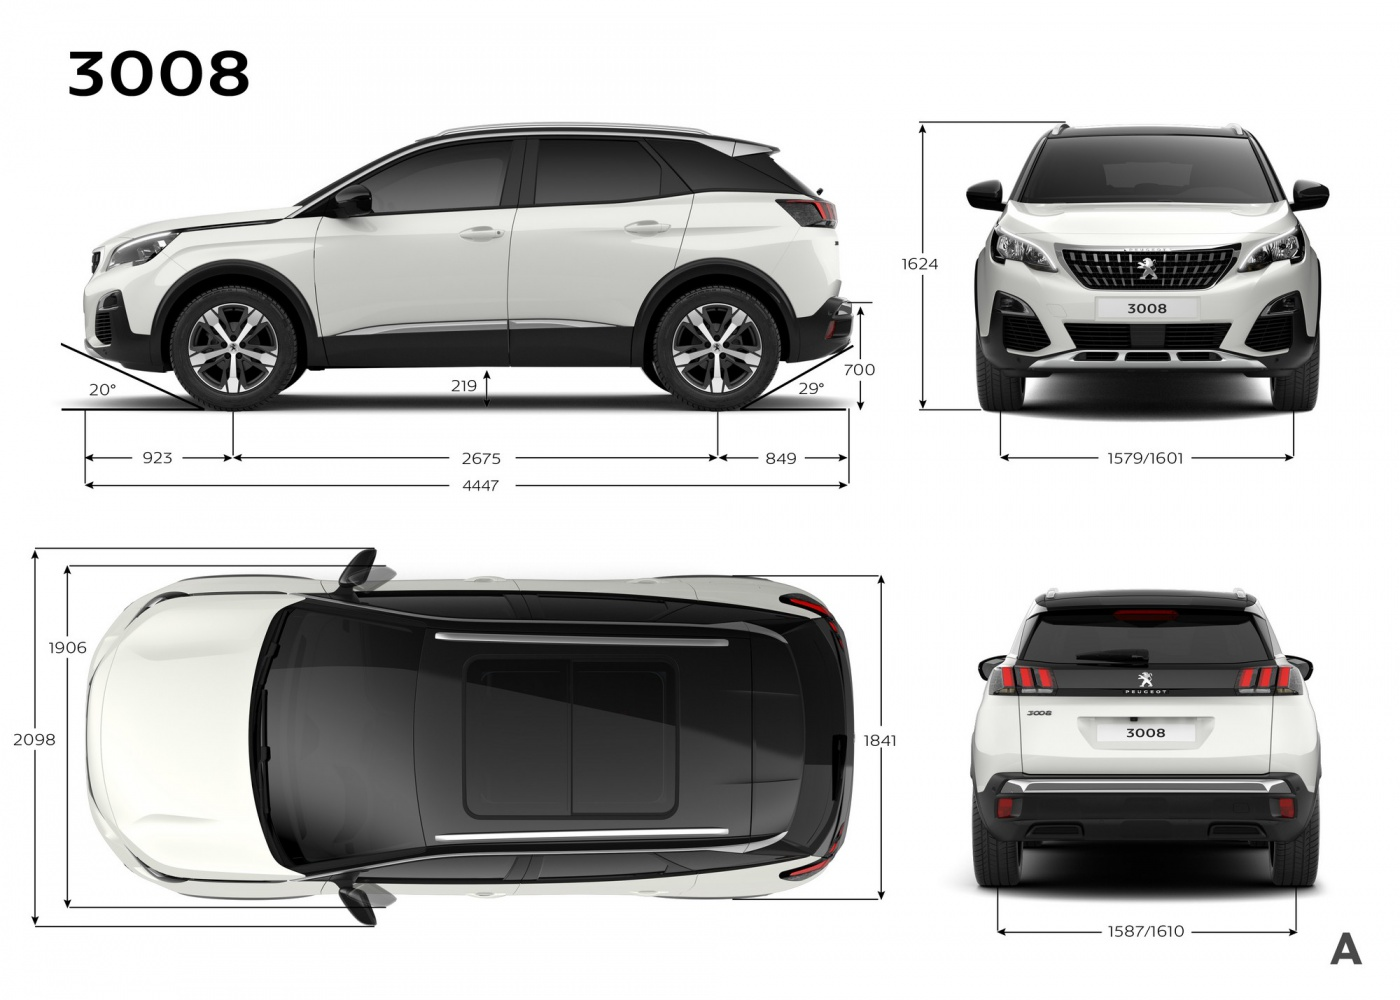 nouvelle peugeot 3008 au carr blog automobile. Black Bedroom Furniture Sets. Home Design Ideas